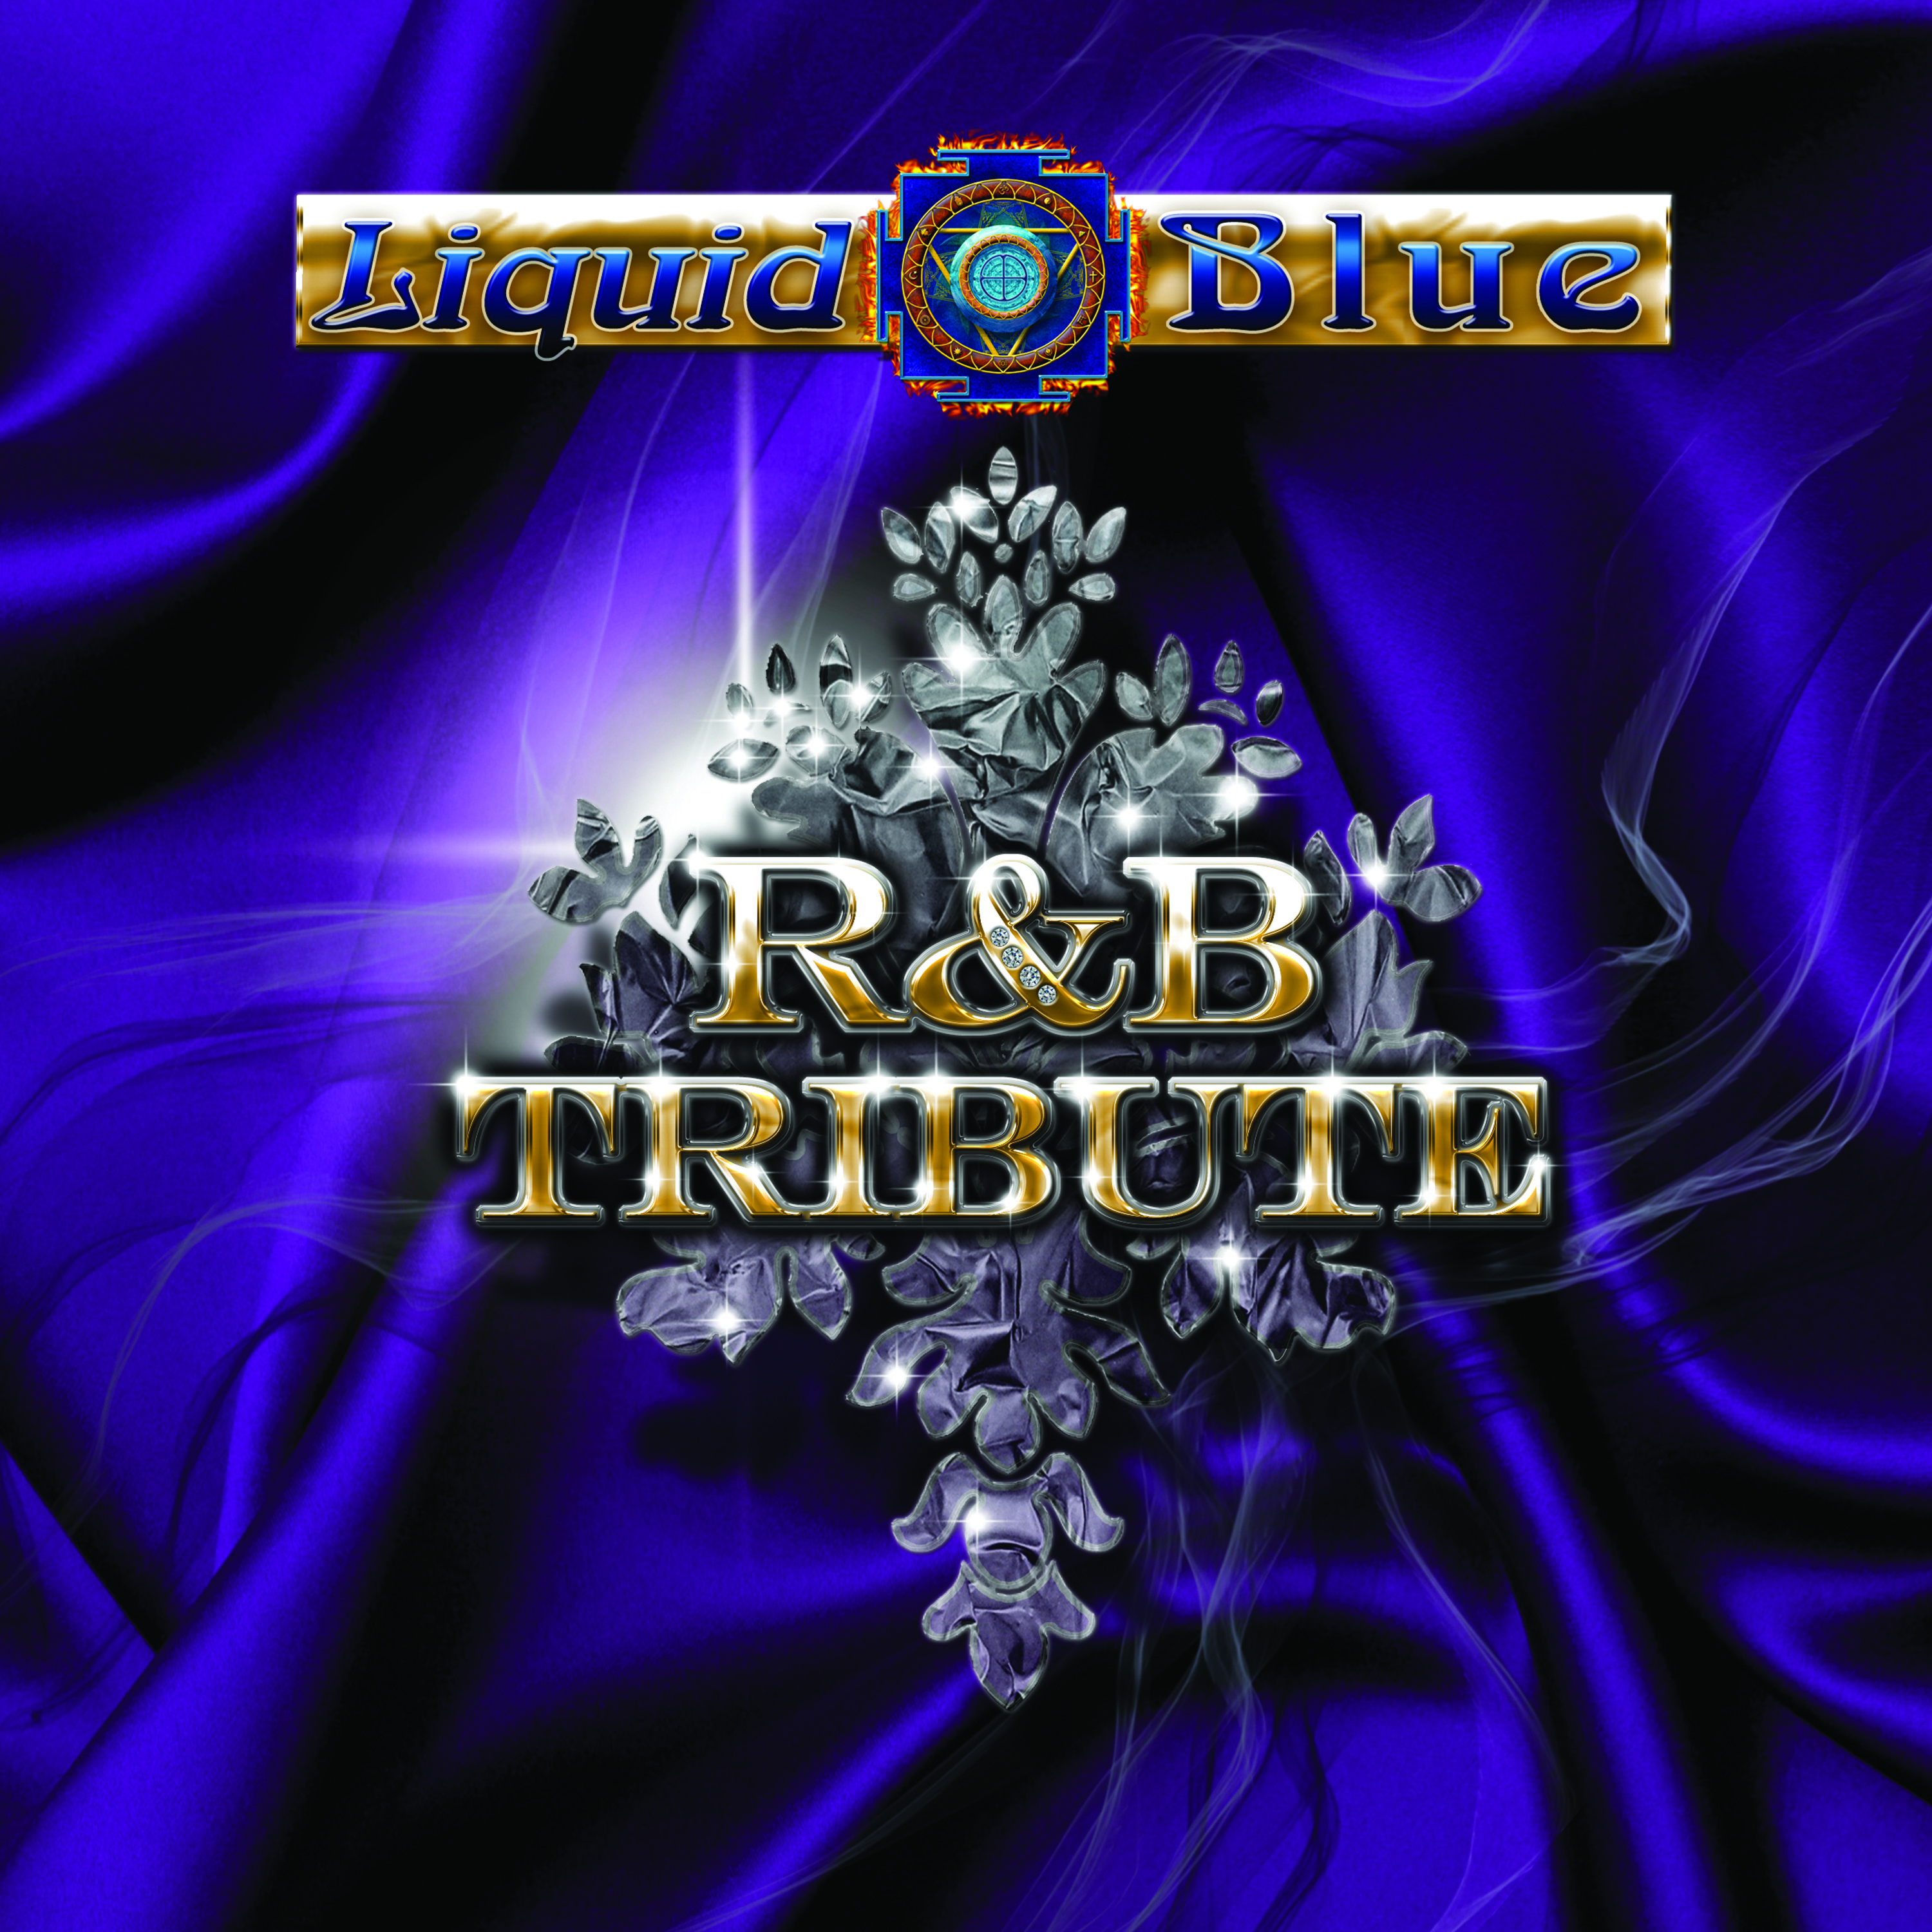 R & B Tribute - Liquid Blue